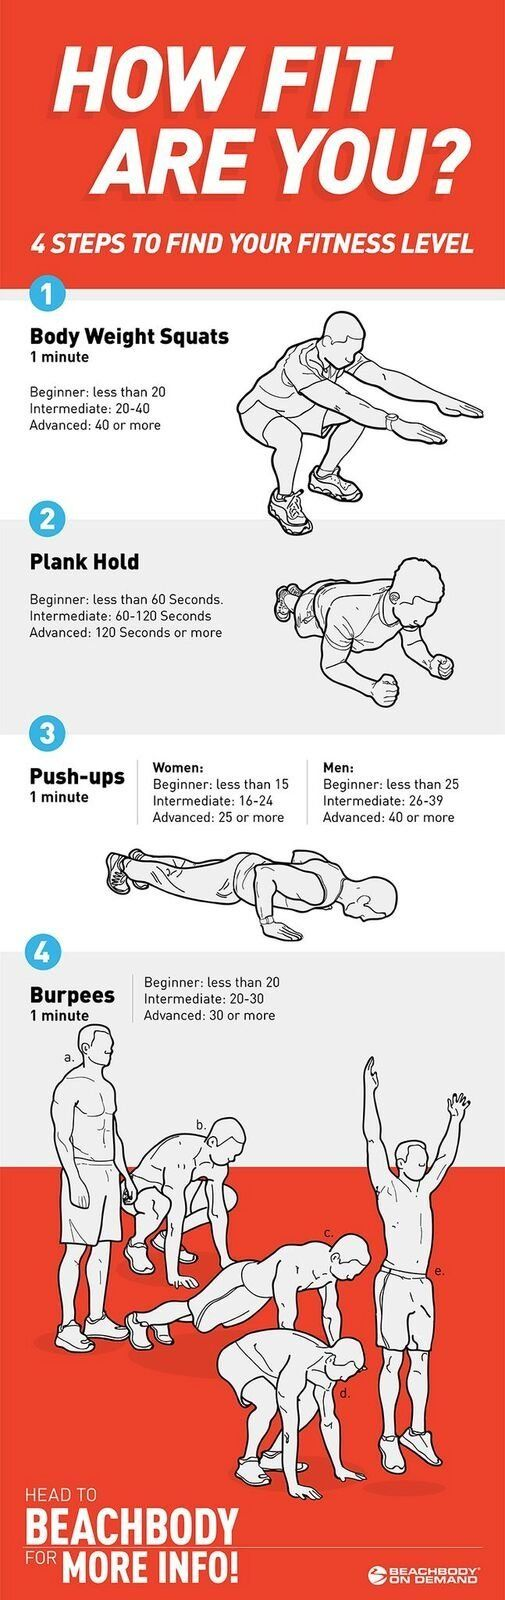 How fit are you? Try these 4 easy steps to find out! #fitnesstips #howtogetfit #fitness #Beachbody // fitness tips // how to find out your fitness level // burpees // push -ups // Beachbody programs // Beachbody Blog // Beachbody